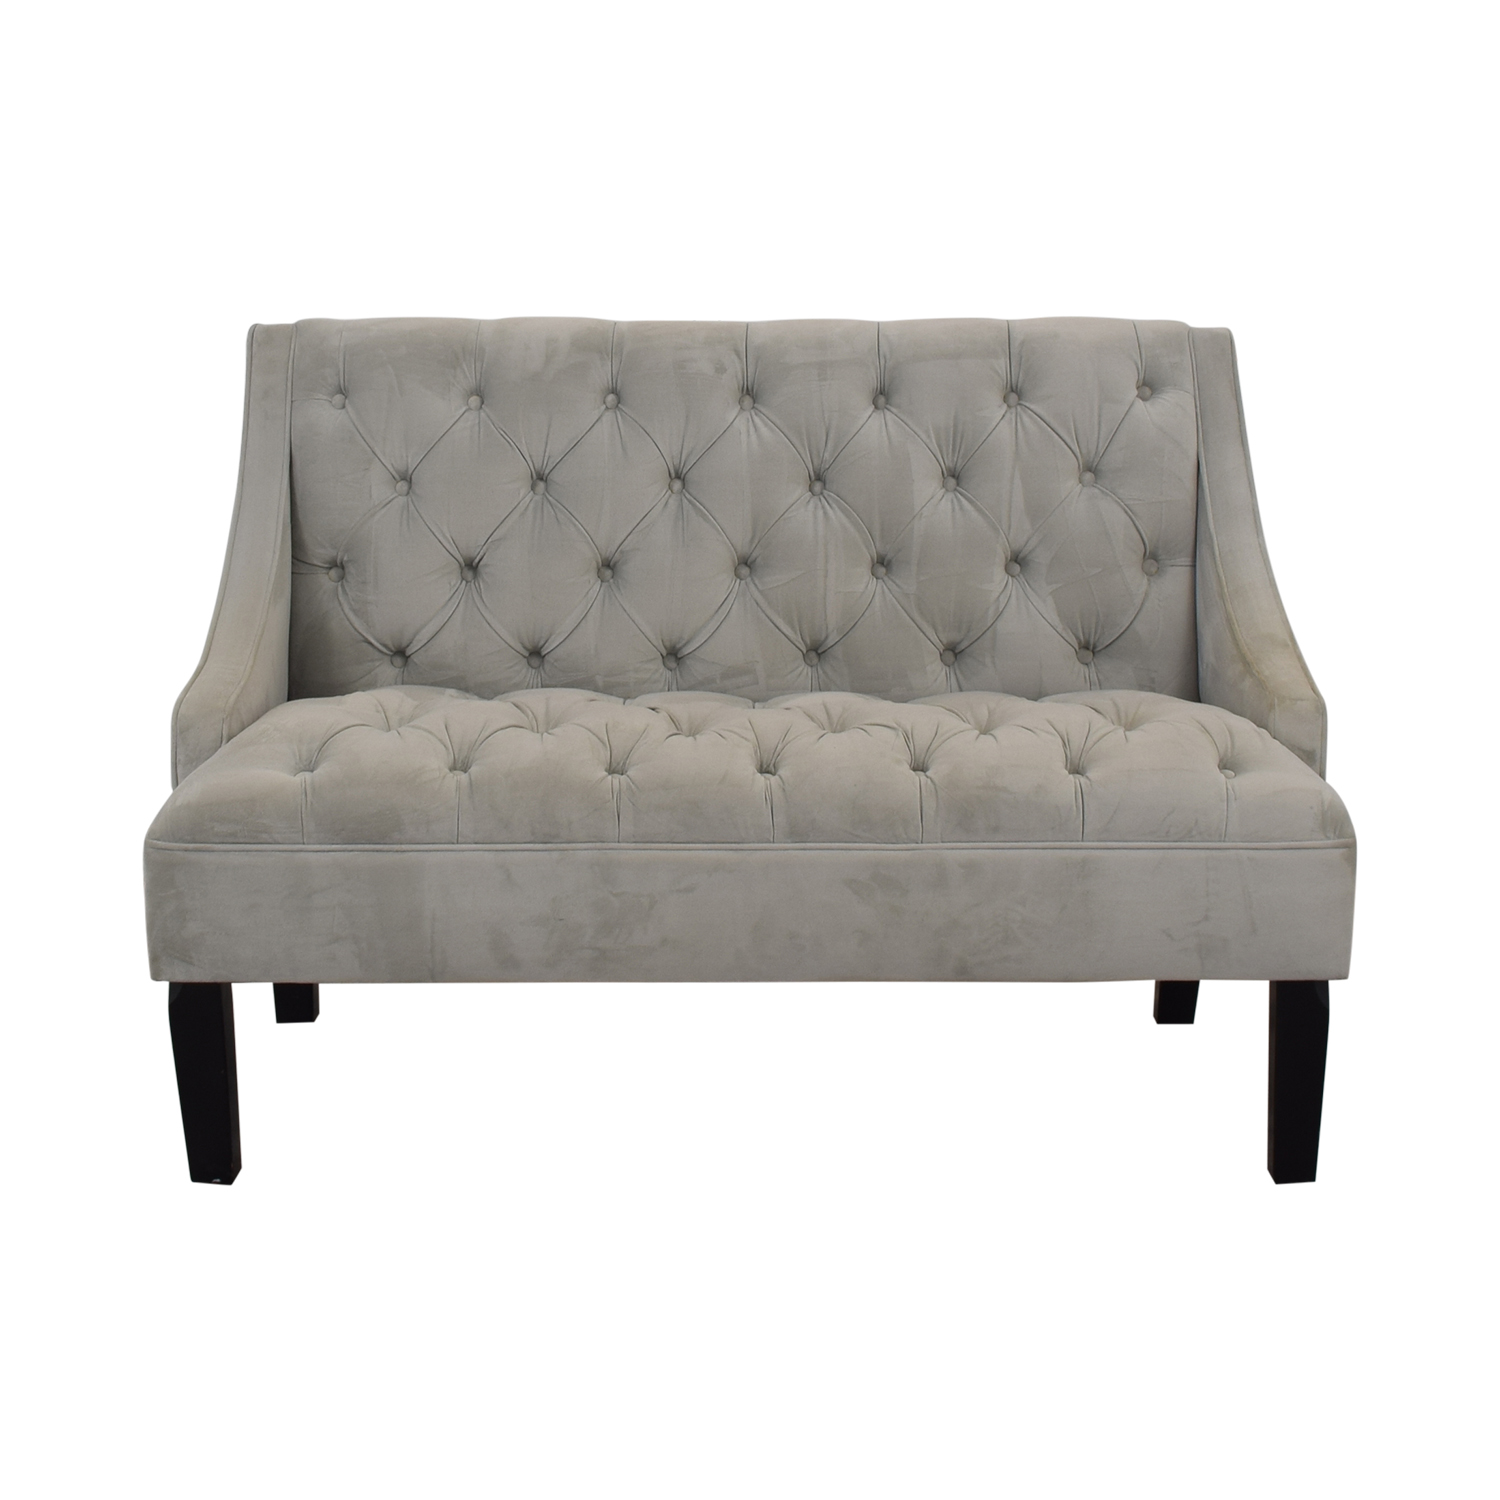 shop Skyline Furniture Skyline Furniture Grey Tufted Loveseat online